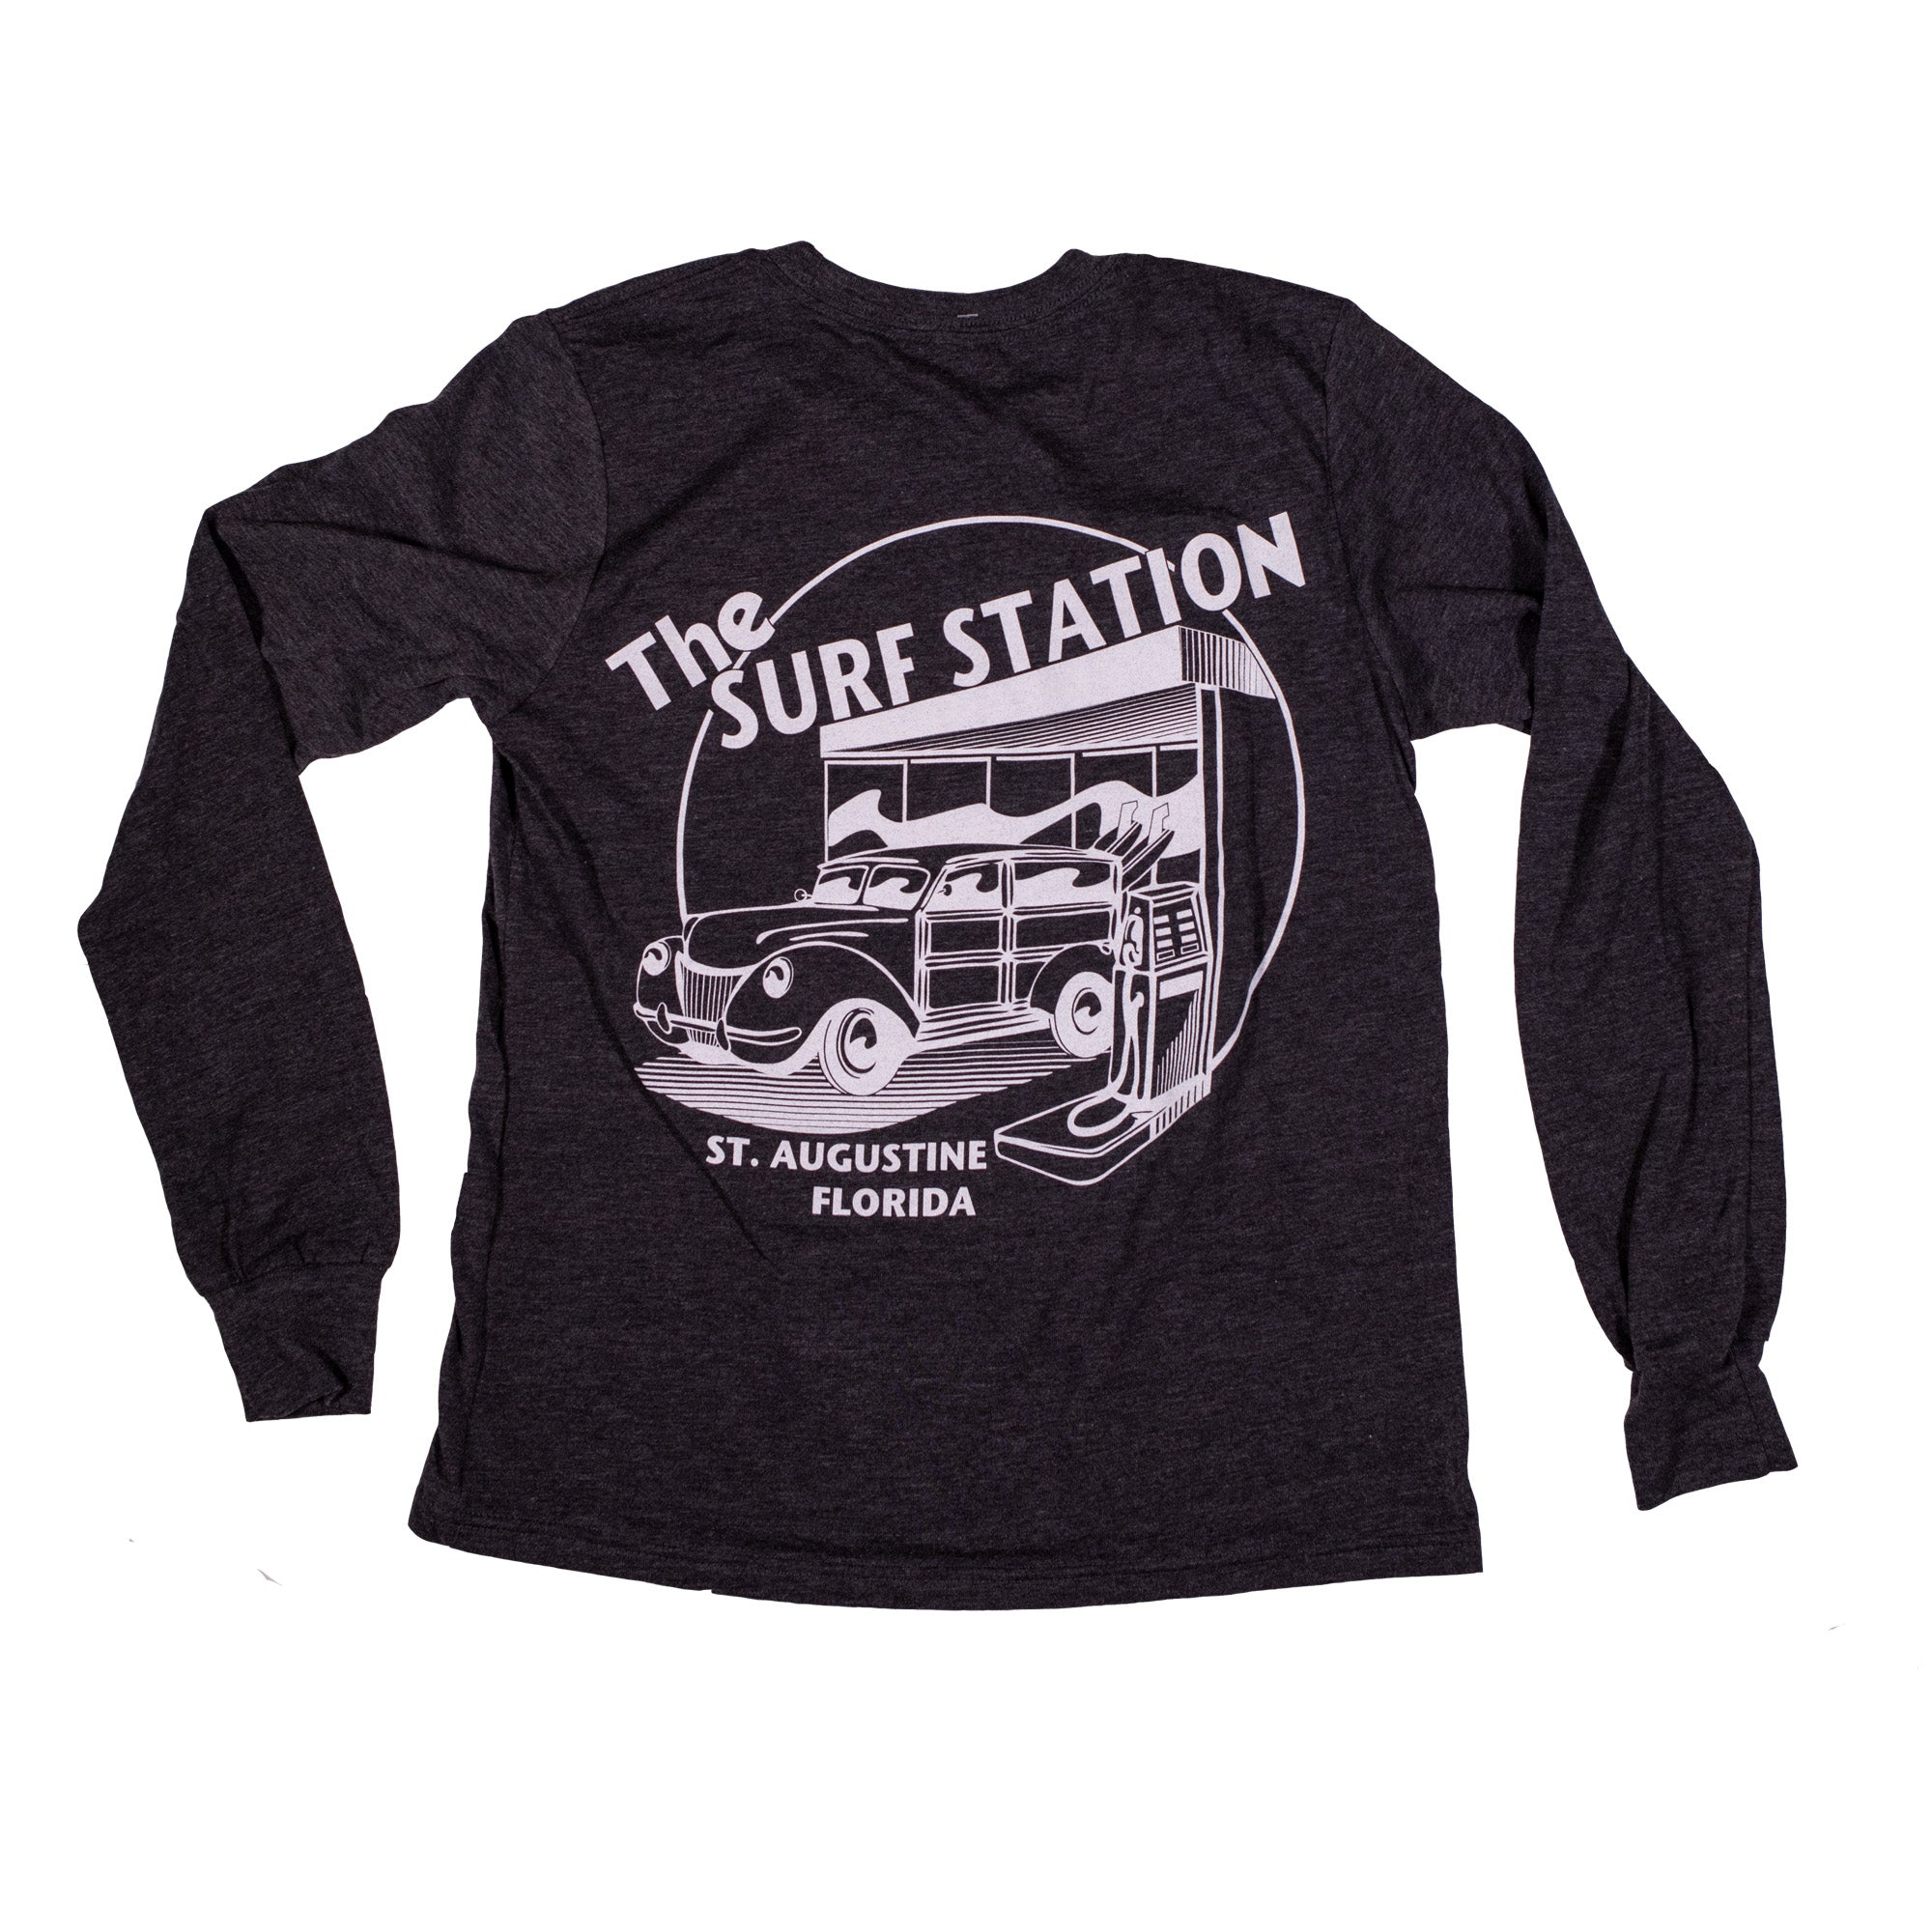 Surf Station Circle Woody Youth L/S T-Shirt